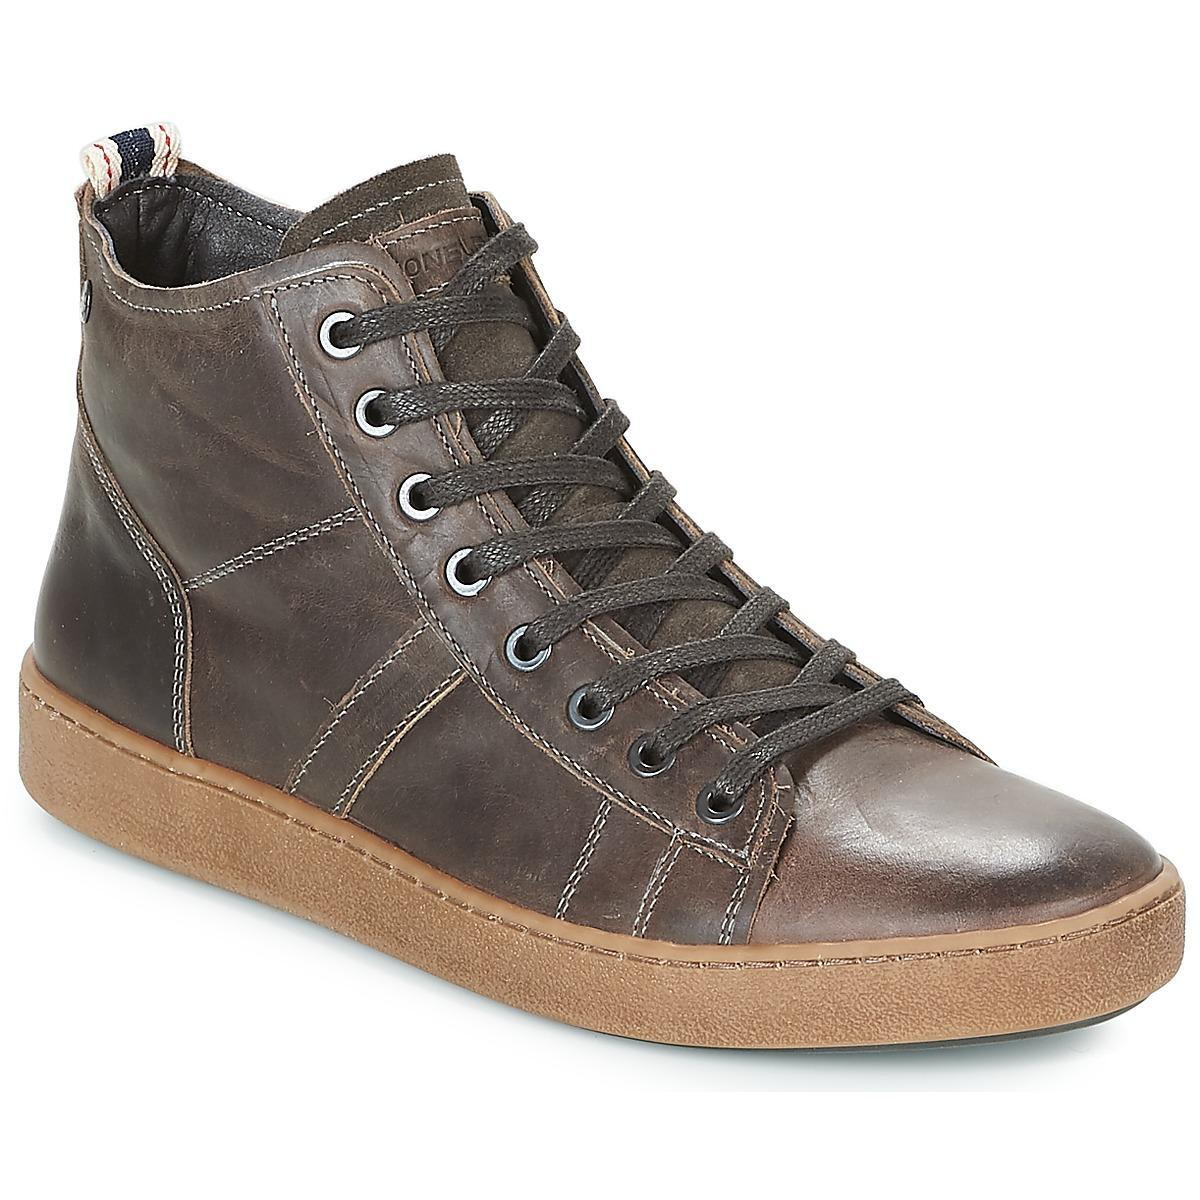 quality design c60e9 6dec8 Jack   Jones Duncan Leather Ltd Shoes (high-top Trainers) in Gray ...